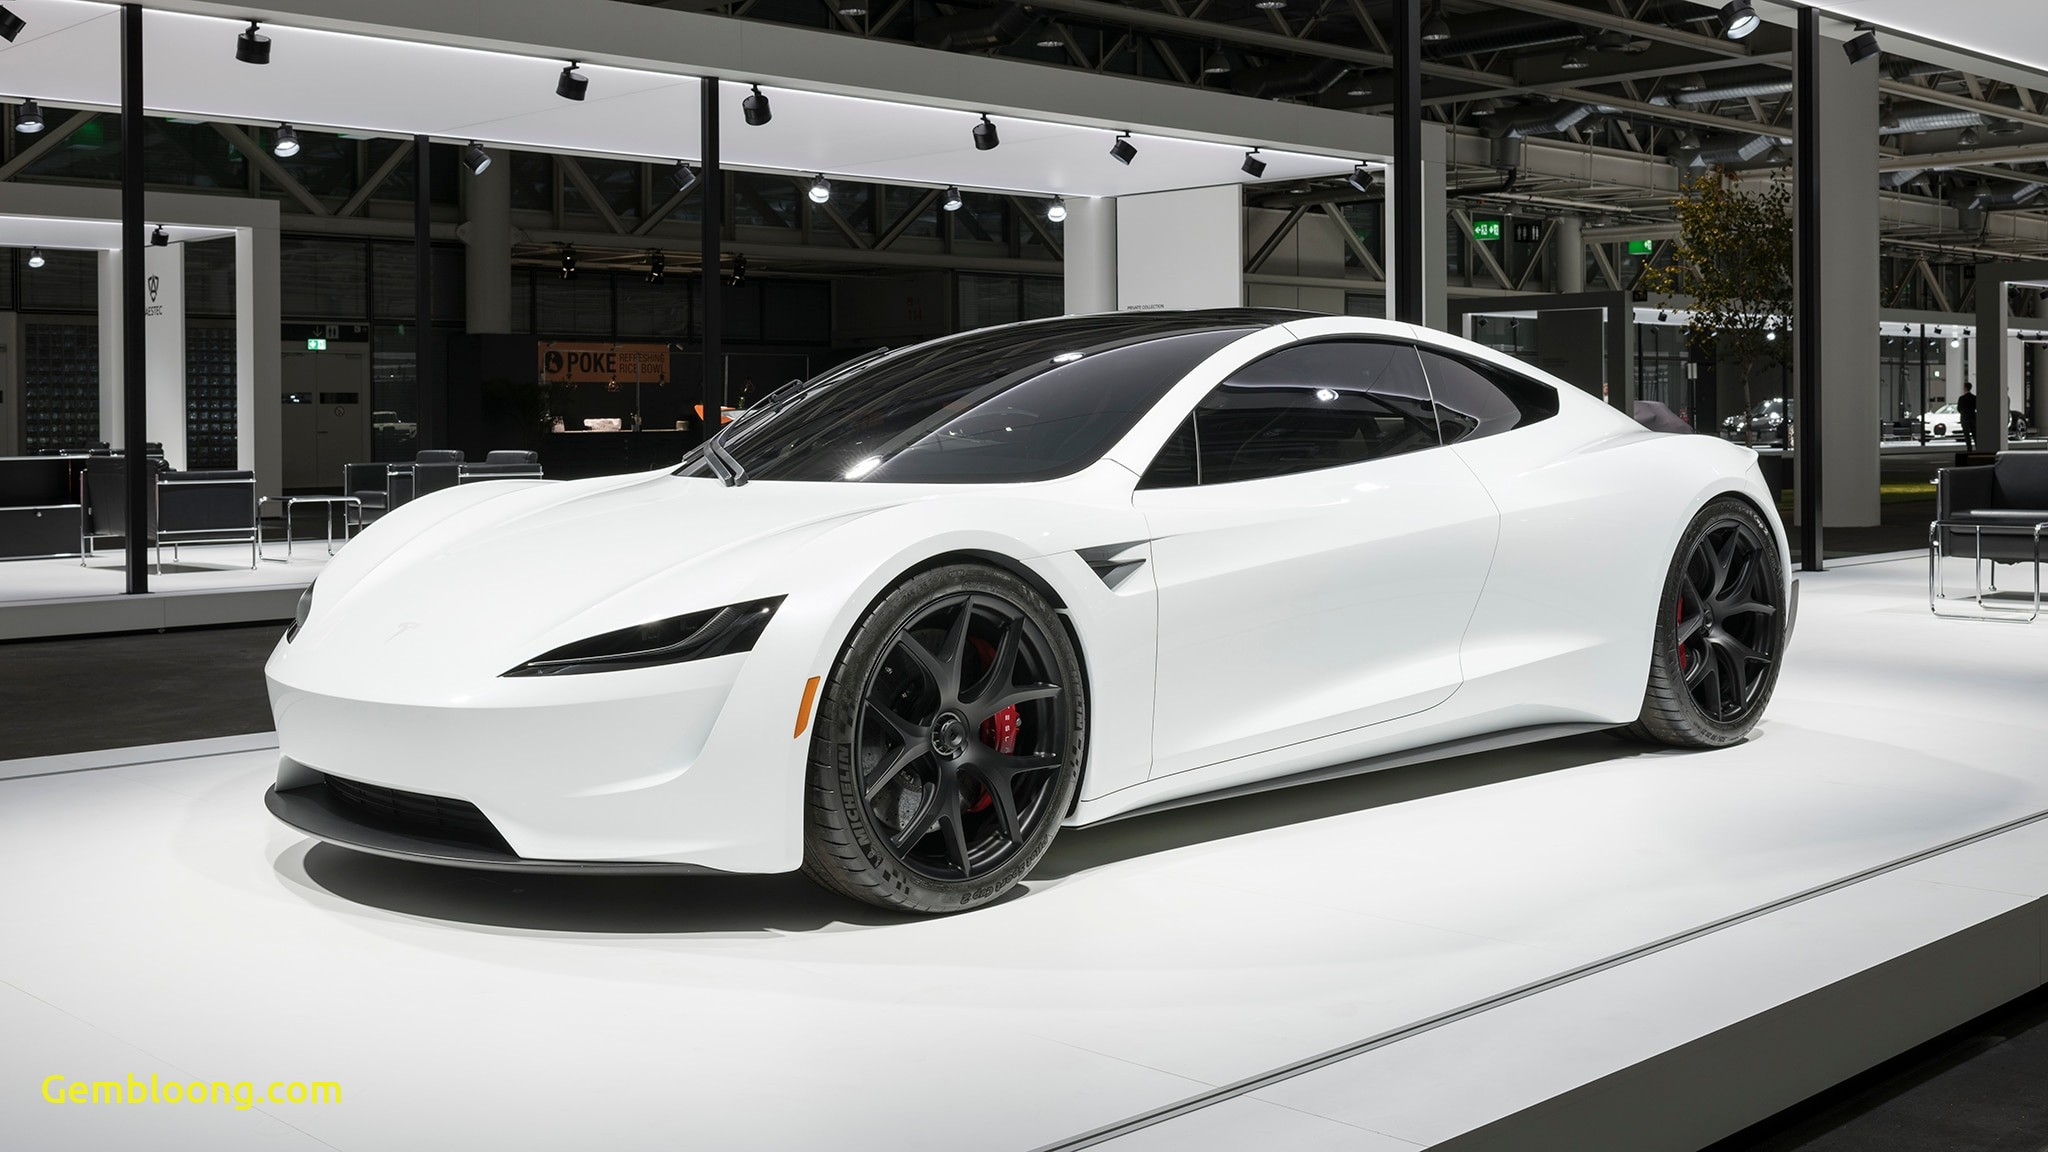 Tesla 2020 Inspirational why Roadster Not Have Supercar Look